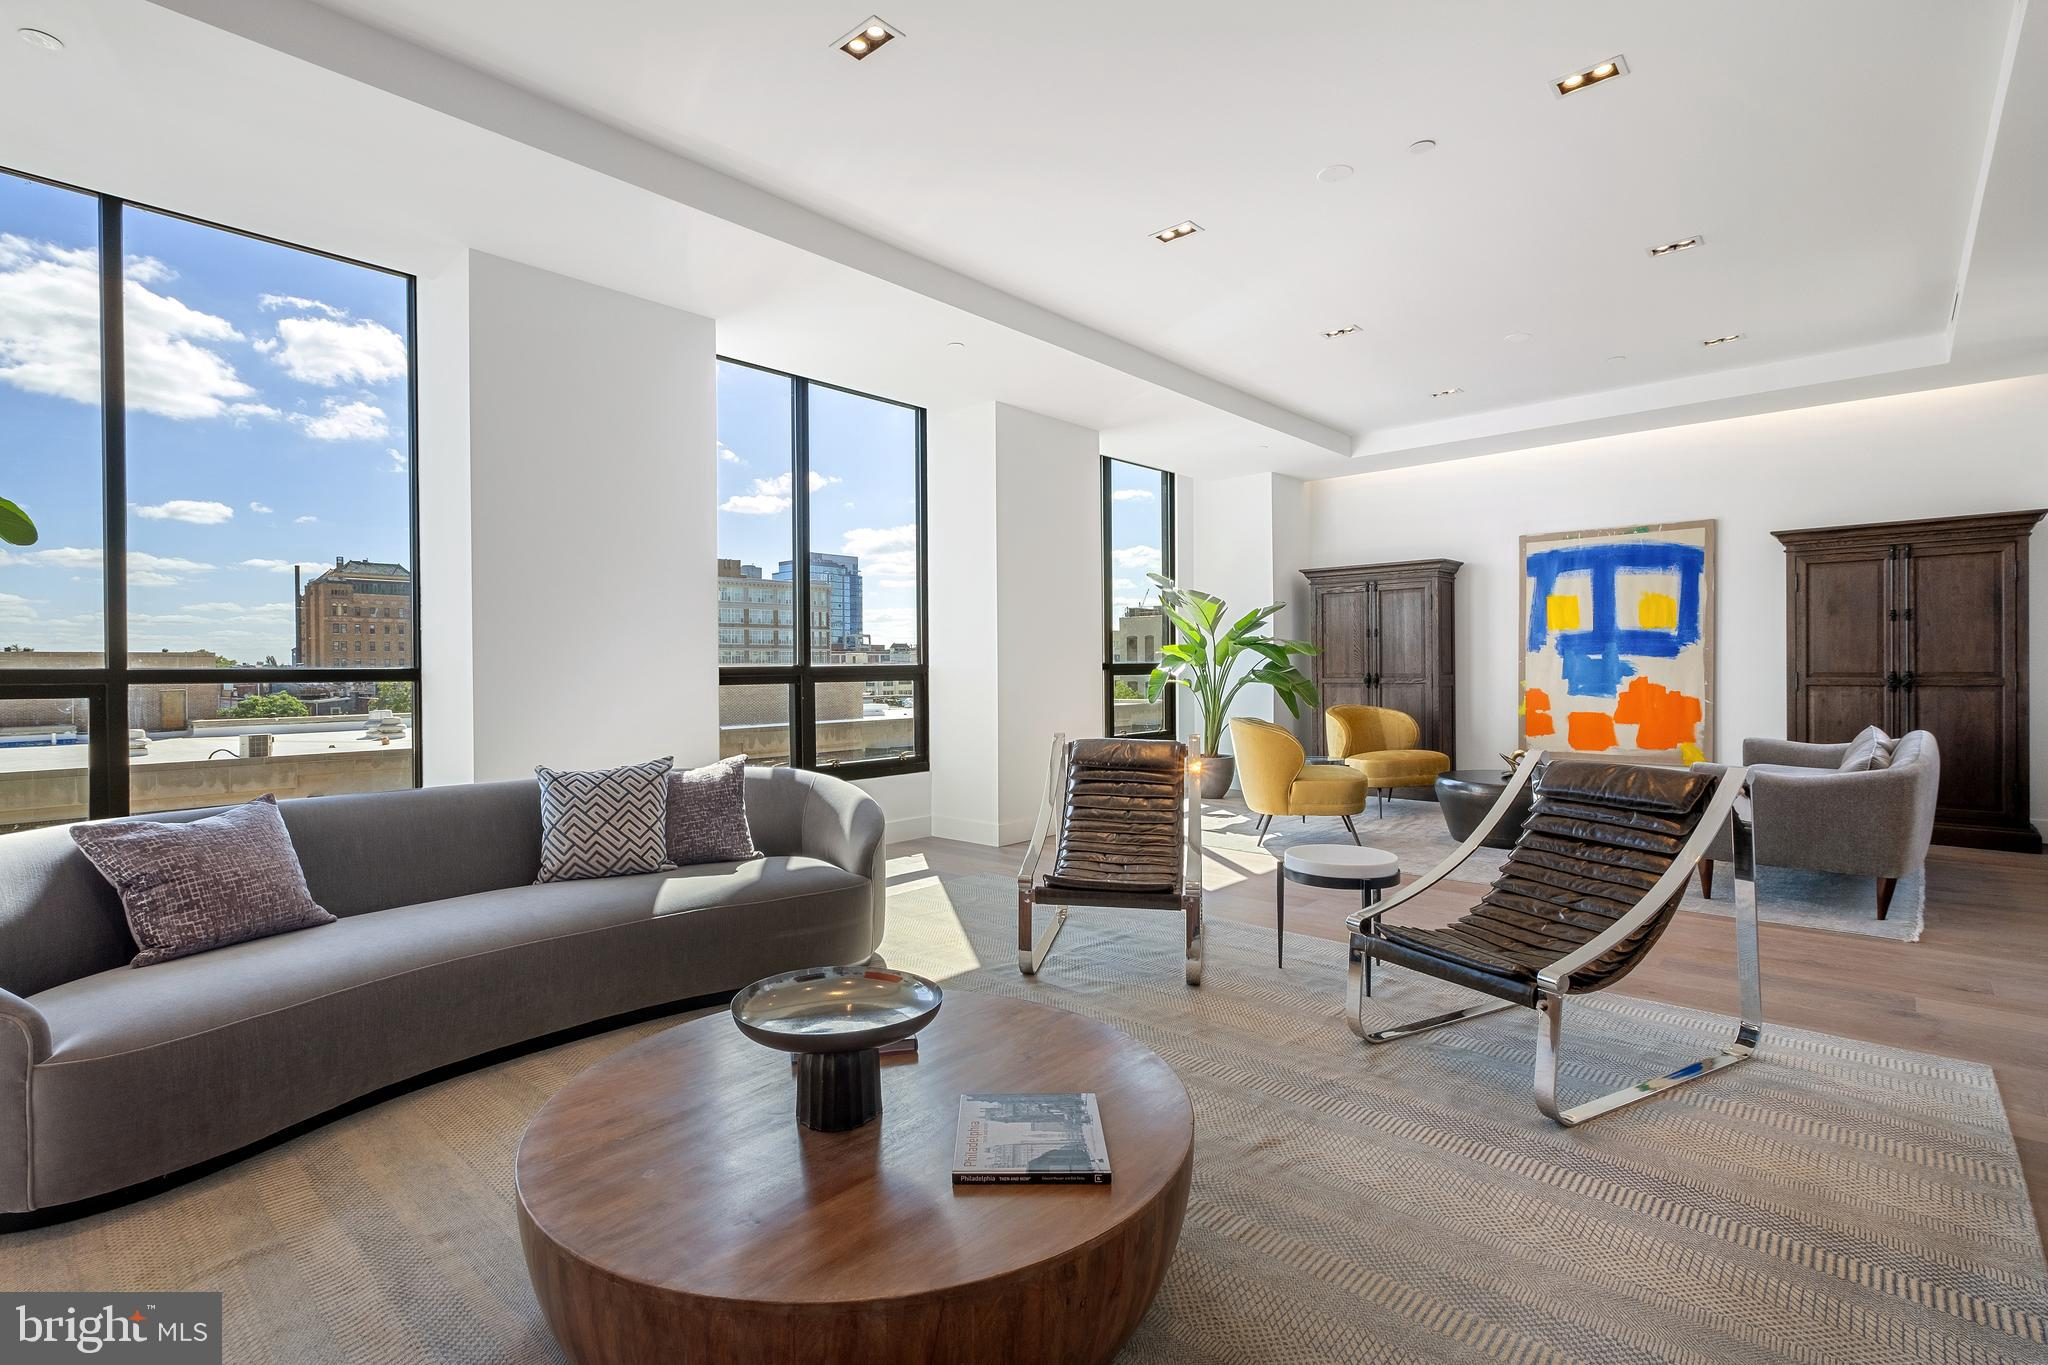 Welcome to 2207 Chestnut Street, nestled in the heart of Fitler Square, and just steps from Rittenhouse Square and Center City's best. **Photos are of a similar unit**  Unit #2  is a gorgeous 3-BD / 3.5 BA layout with over 3,388 square feet of luxurious living space. A modern masterpiece, the full-floor residence includes a private foyer, oversized living room with a large frontage display,  and impressive floor to ceiling windows with vibrant all day natural light. A lovely private terrace offers optimal outdoor space for relaxing or entertaining.  The residence is equipped with top-grade appliances such as Wolf ranges, Sub- Zero refrigeration and Asko dishwashers. The Scavolini kitchen is breathtaking, and fit for a chef. All bedrooms are spacious and well appointed for privacy. Bertolotto and Bianca closets & doors showcase exquisite Italian design throughout the residence. All units feature the most advanced home technology including a virtual secured entrance system enabling you to grant access to visitors and monitor your home. This unit includes low condo fees, on-site indoor parking, a storage room license with no fees, and 10-year tax abatement. Schedule your showing today!